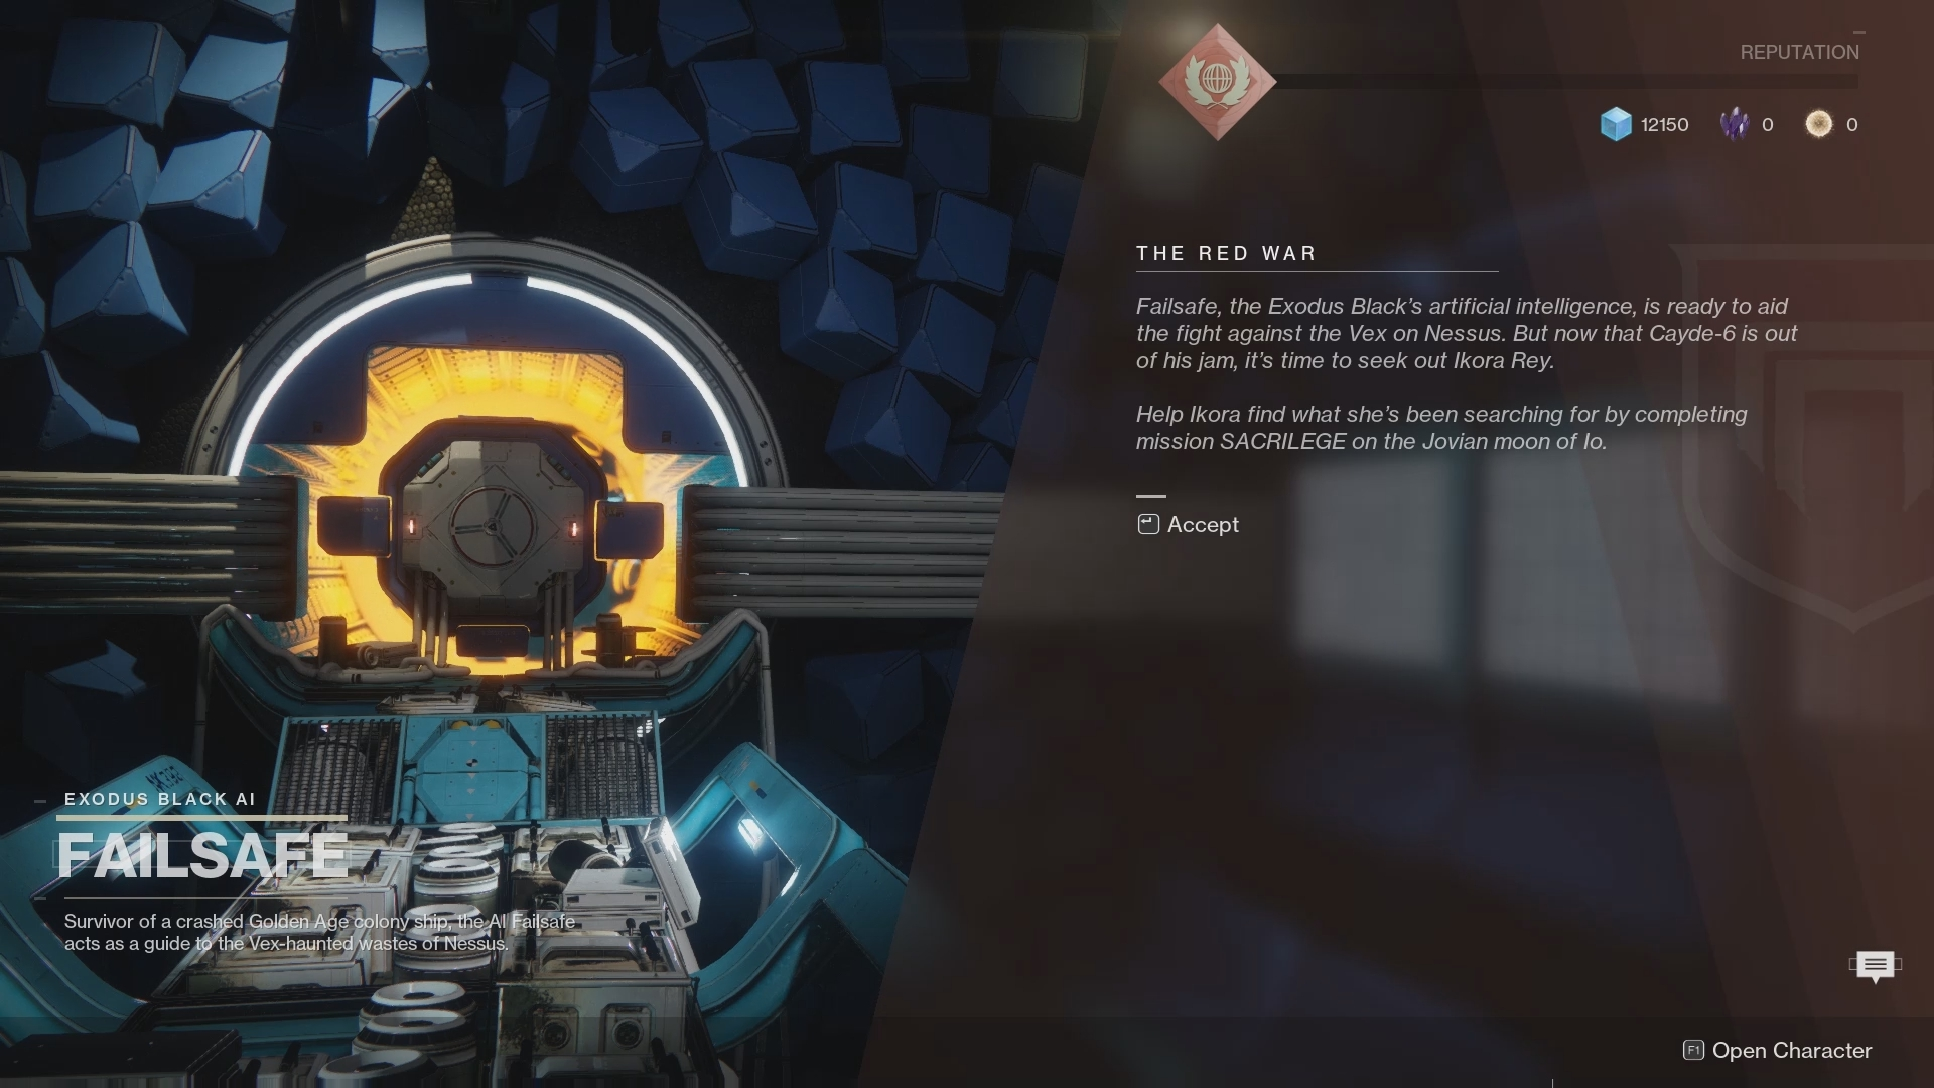 Destiny 2 - The Problem of Impermanence and Those We've Left